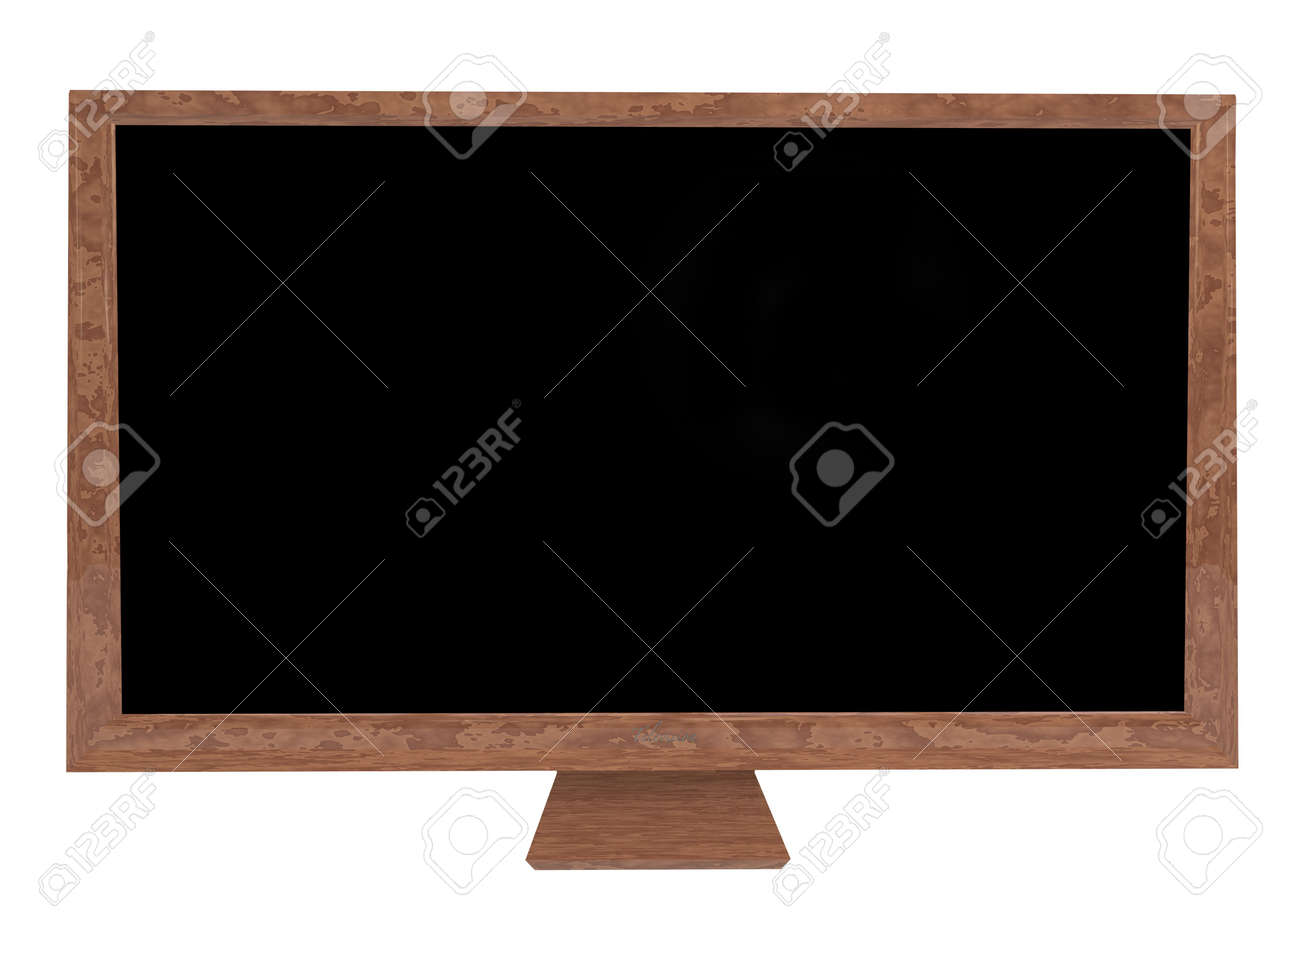 Stone case on a modern flat screen television with room to add your own image Stock Photo - 6648353